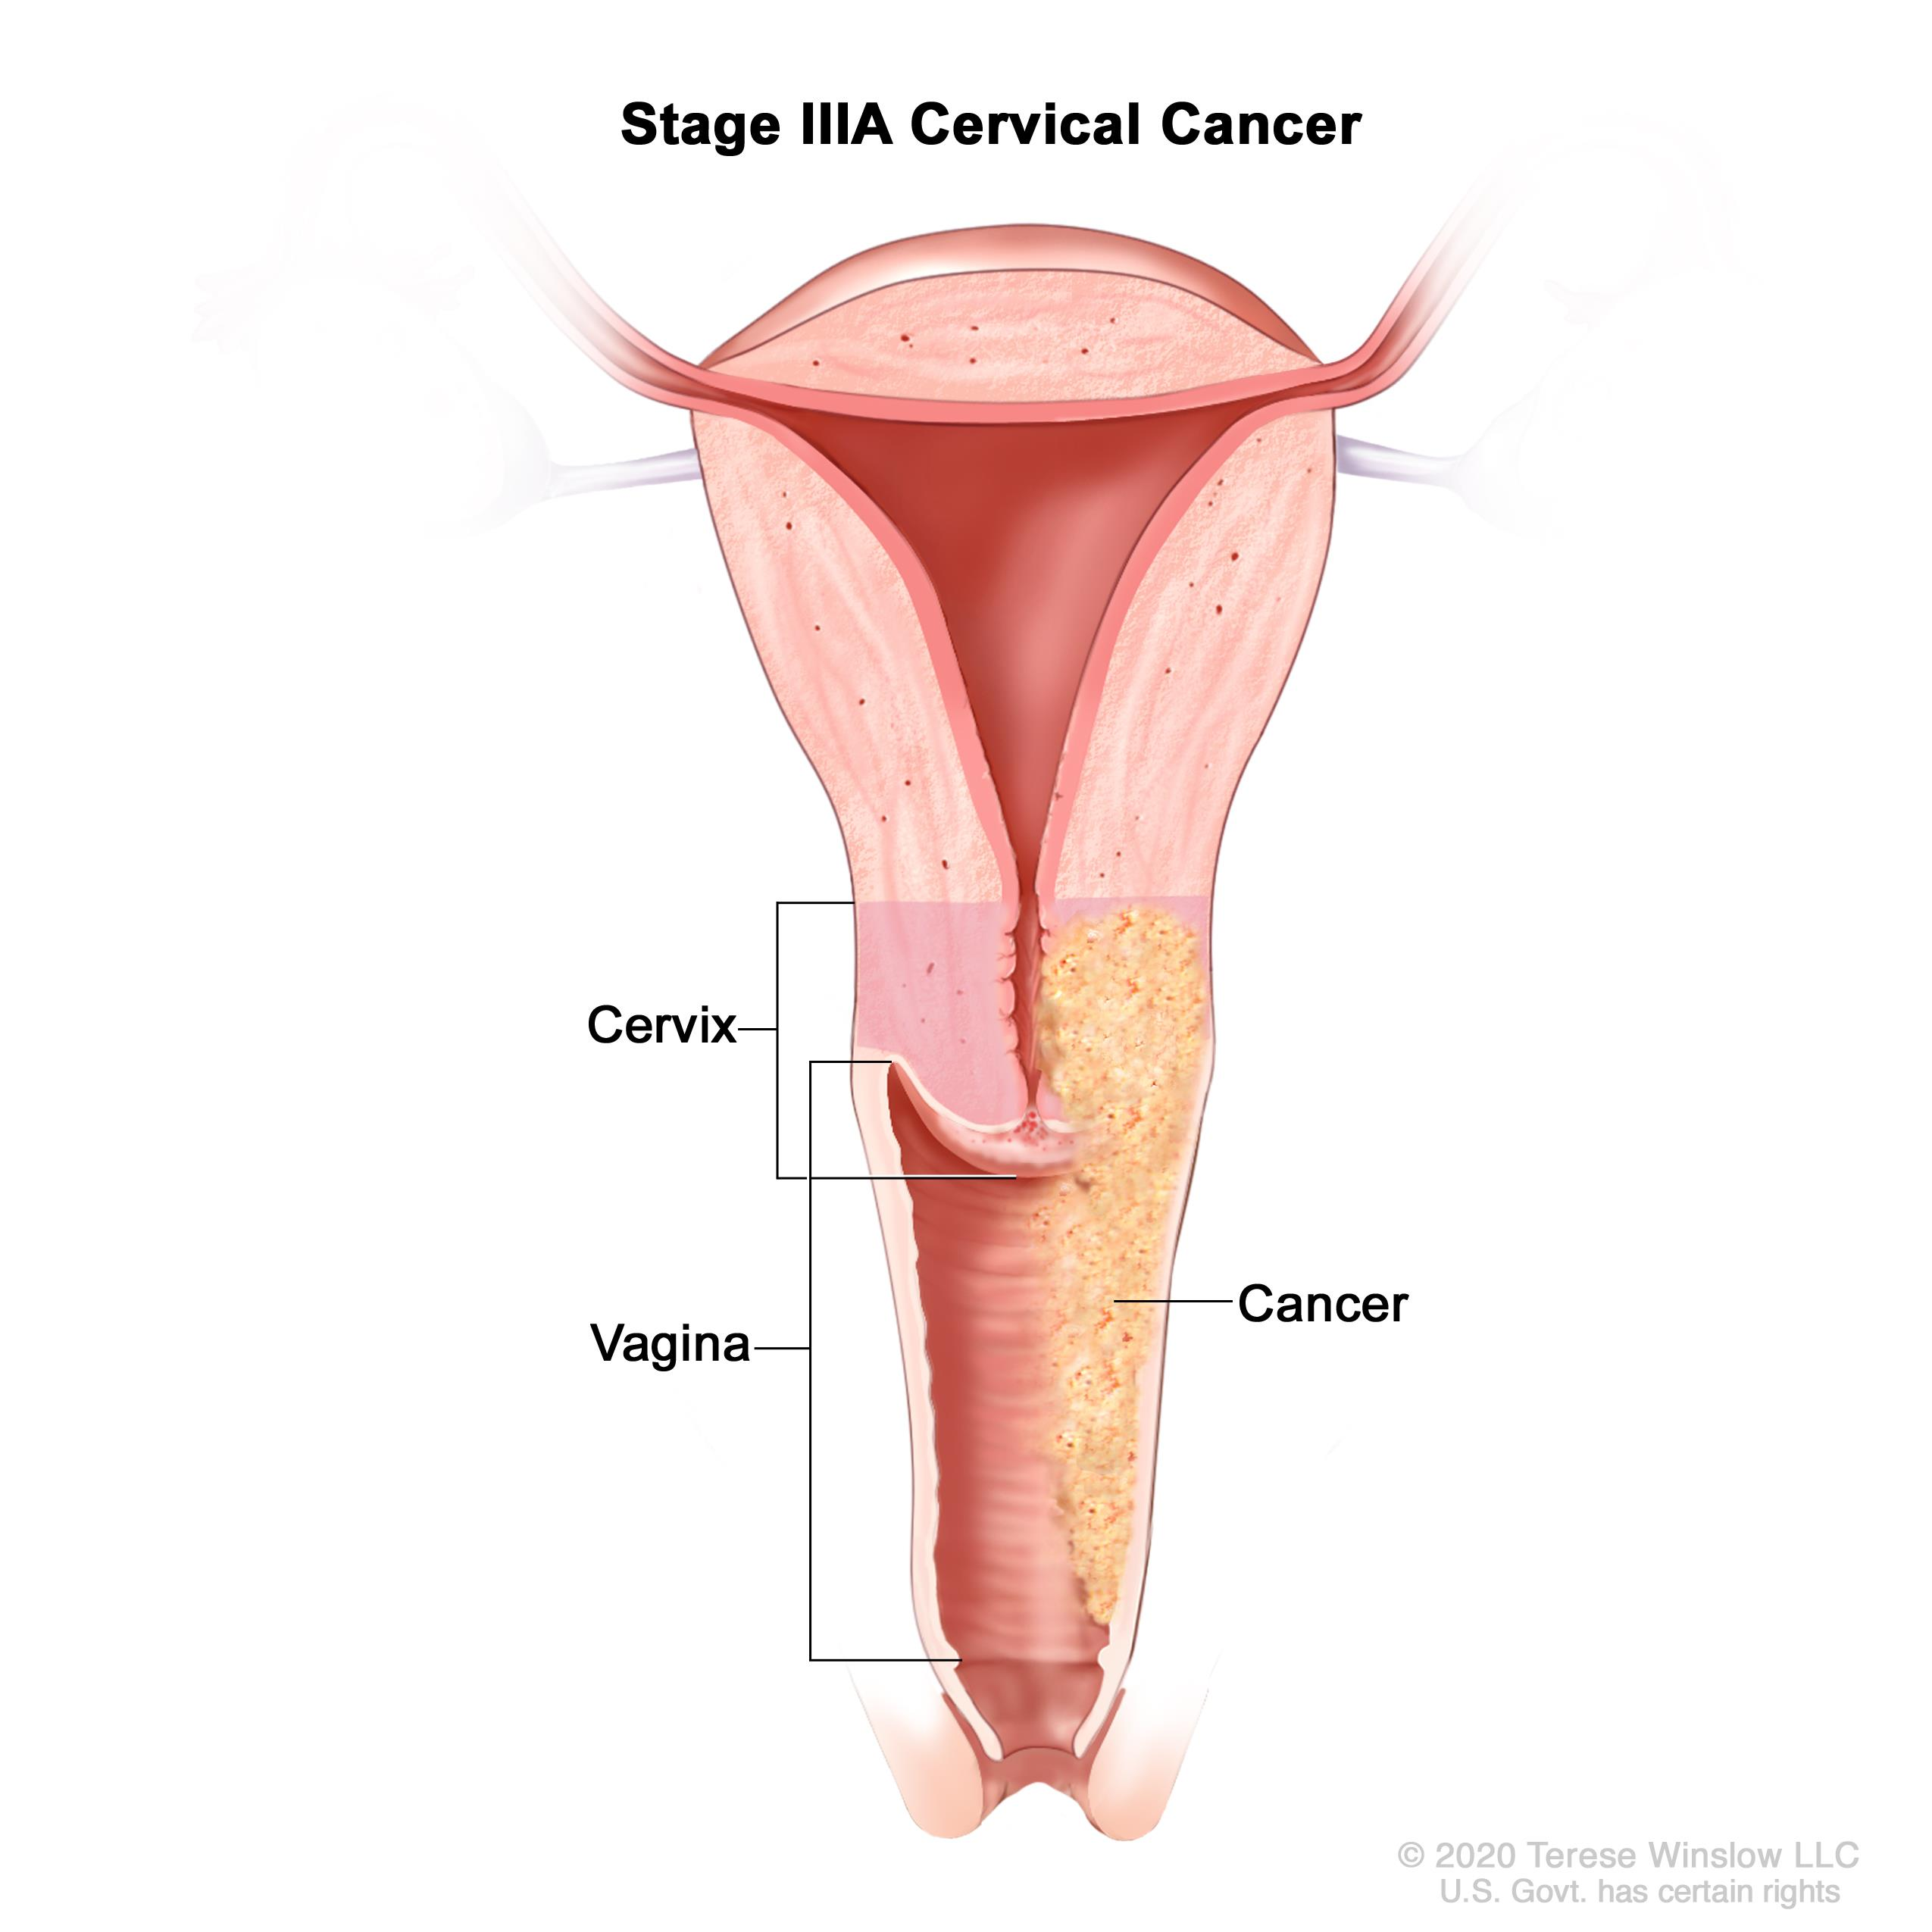 Stage IIIA cervical cancer; drawing shows a cross-section of the cervix and vagina. Cancer is shown in the cervix and in the full length of the vagina.